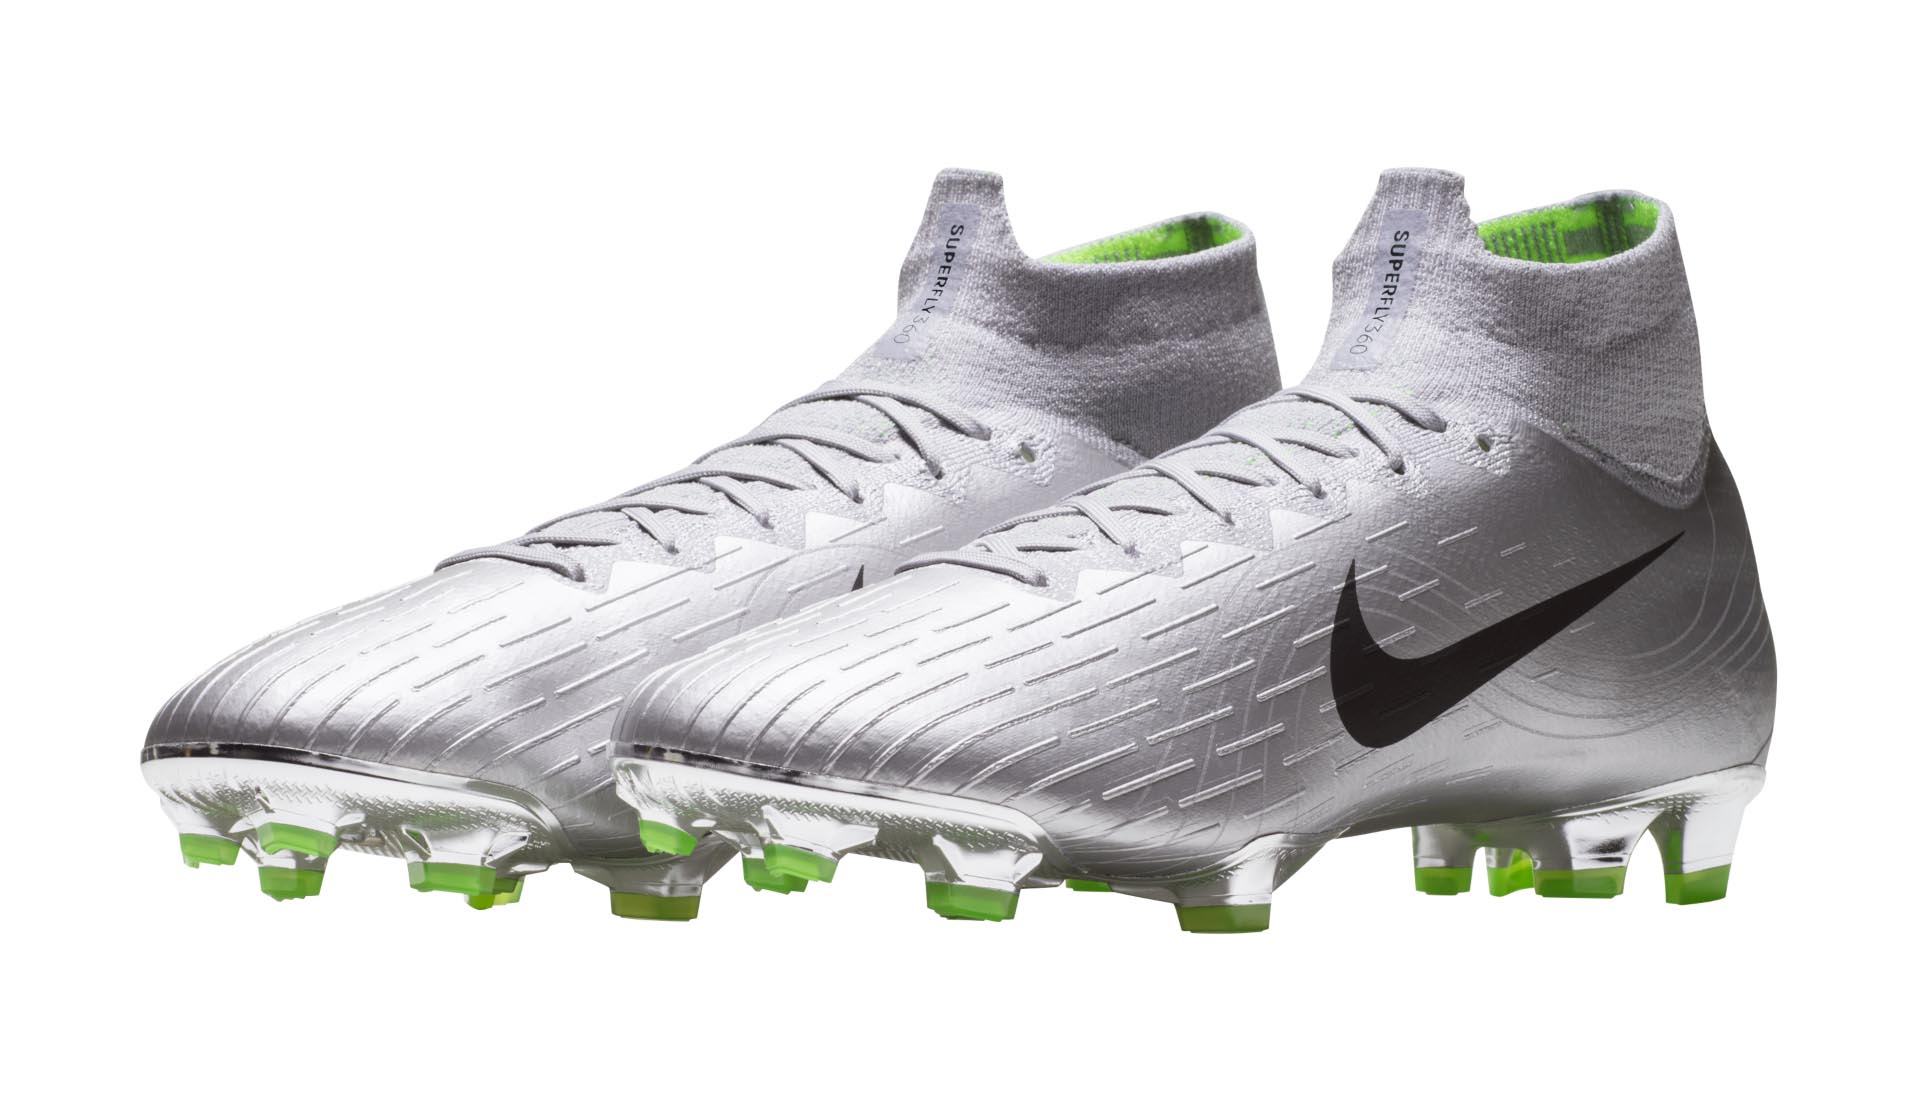 carril inflación Intacto  Nike Launch The Mercurial Heritage Collection - SoccerBible